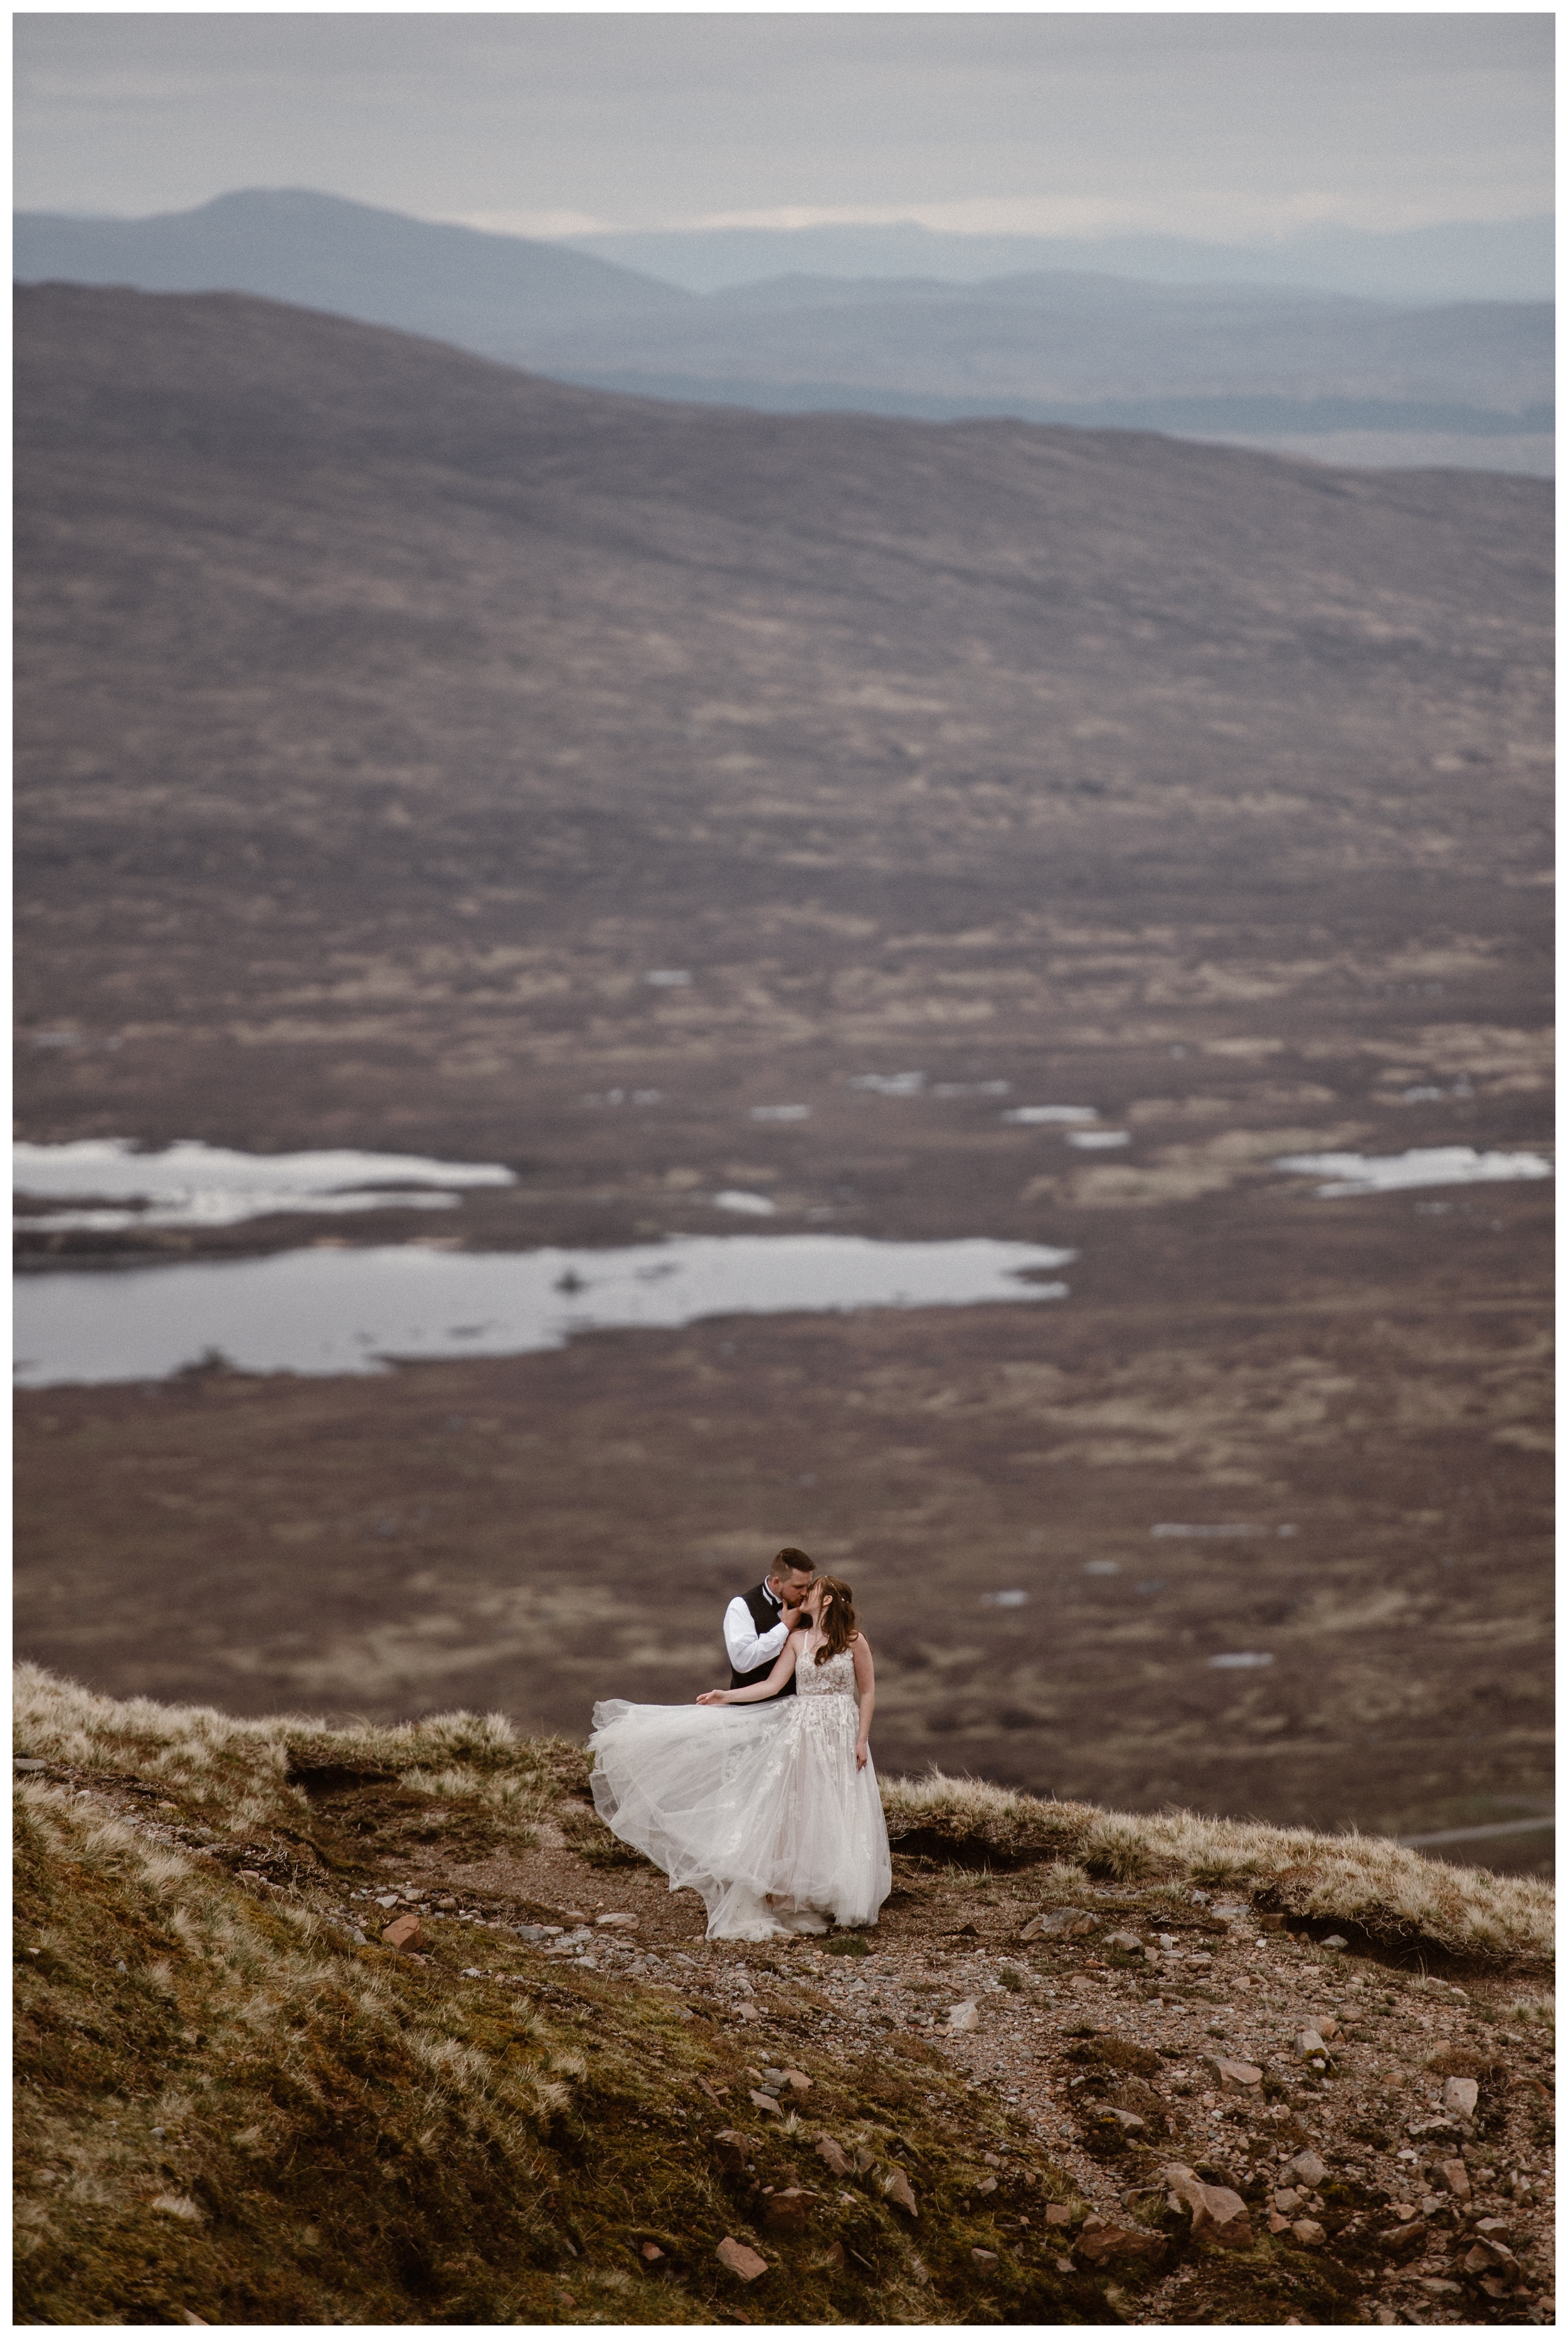 With the mountains of the Scottish Highlands behind them, Elissa and Daniel embrace ahead of their destination elopement. Photo by Maddie Mae, Adventure Instead.